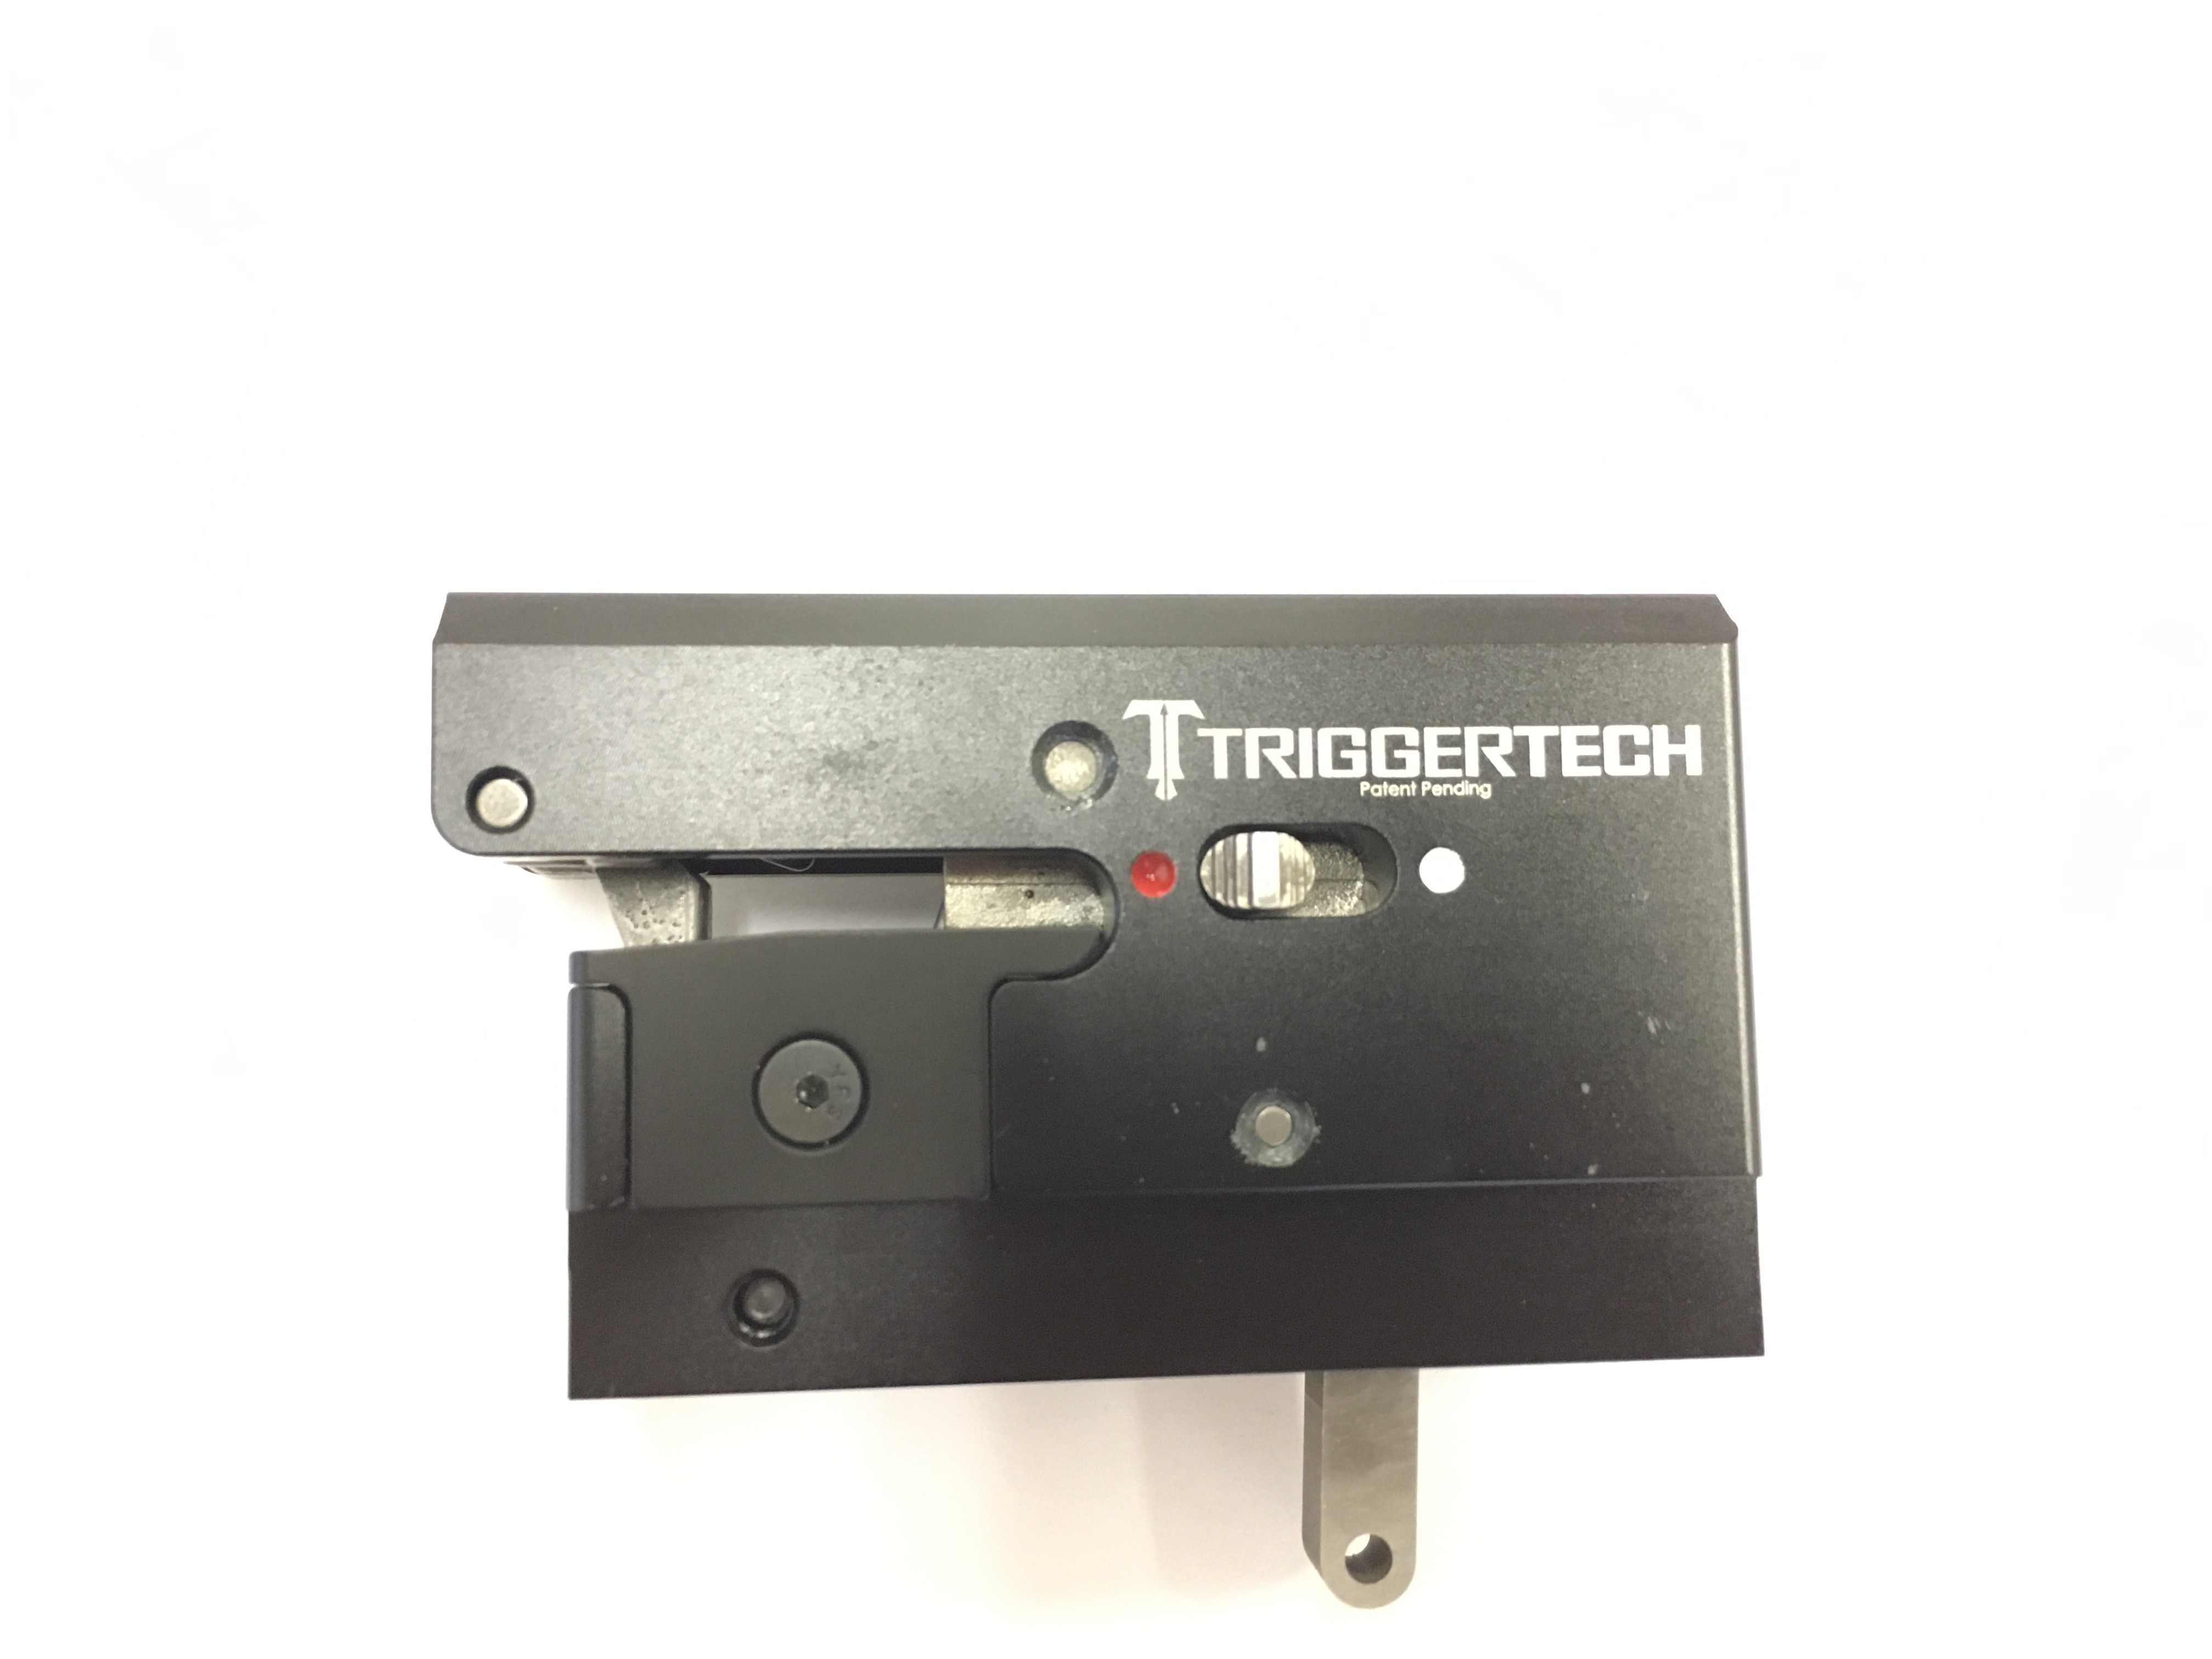 TriggerTech Recalls Crossbow And RifleTriggers Due to Injury